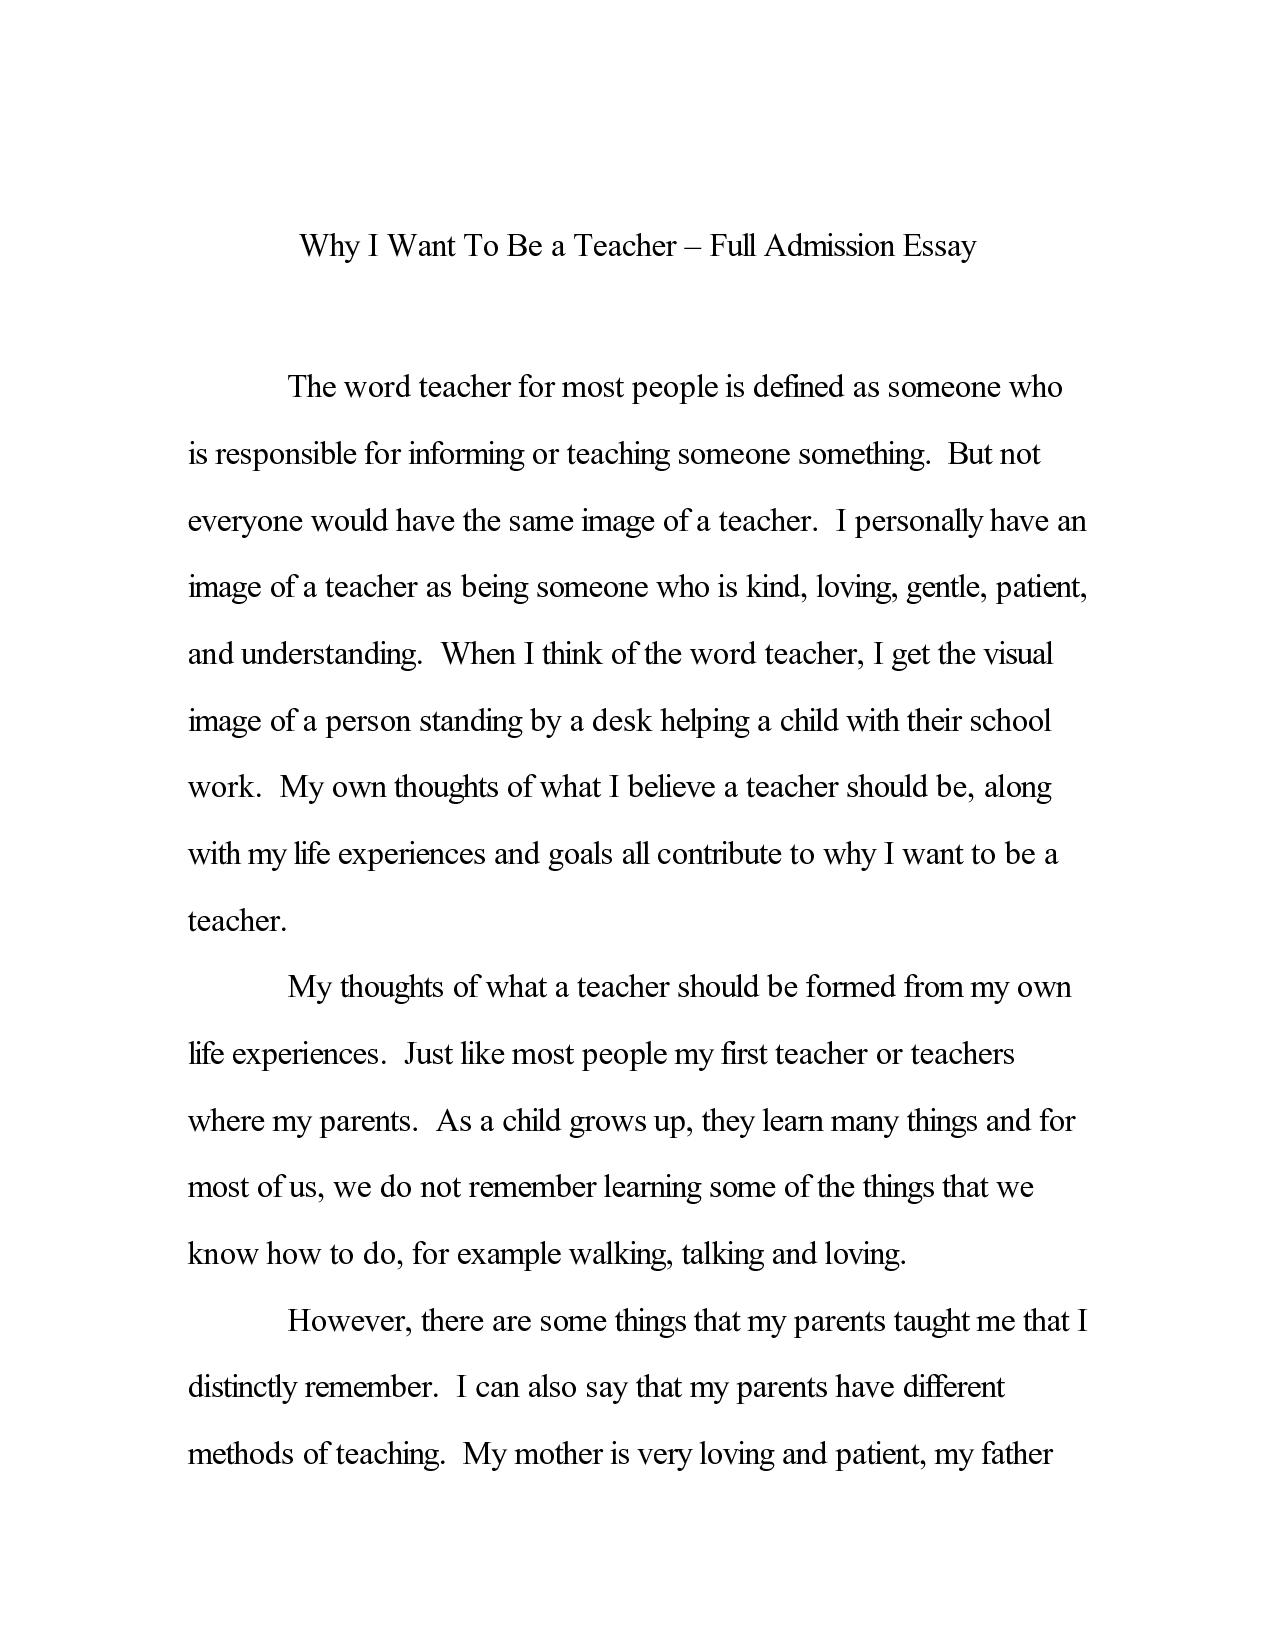 001 Essays For College Amazing Essay Examples Reflective Samples Admission Process Full